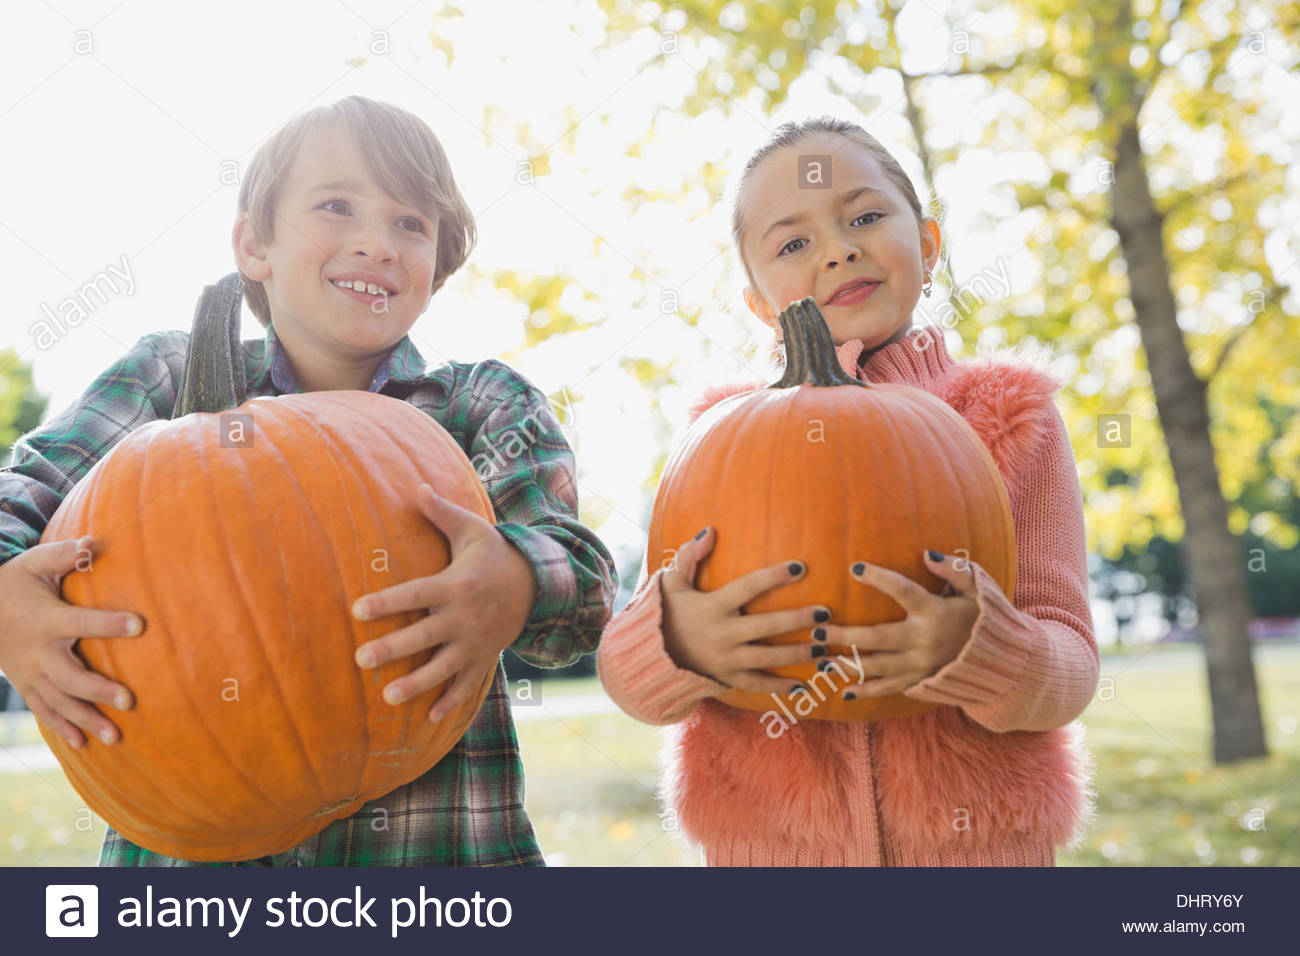 Kids carrying pumpkins - Stock Image